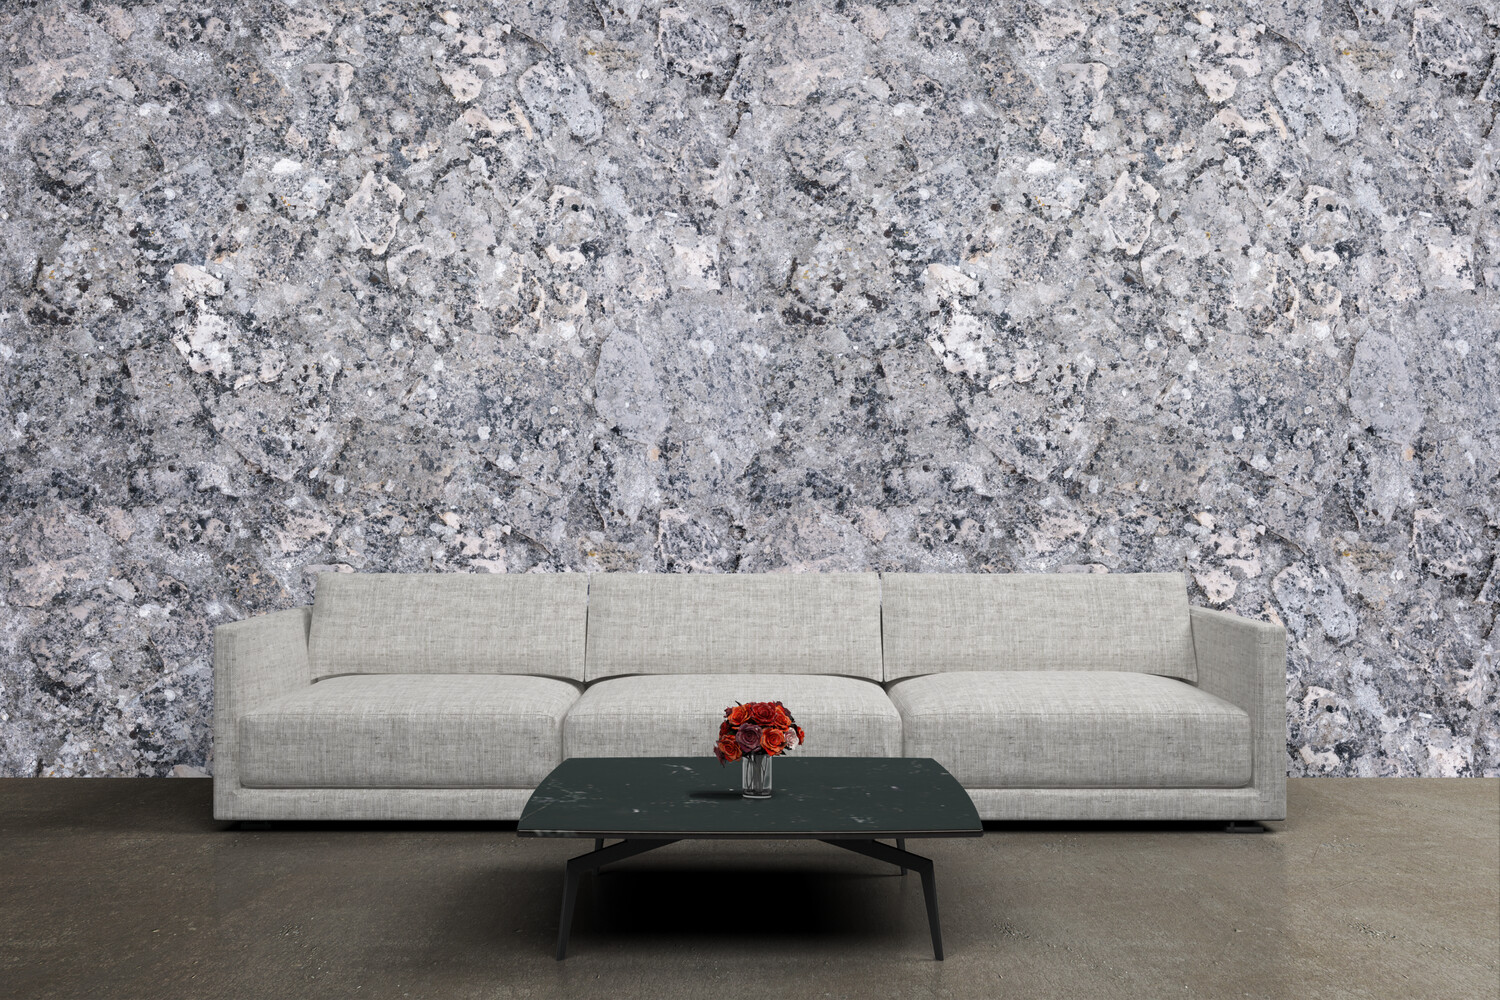 DETAILED STONE TEXTURE | Vinyl Wall Wrap for Any Room | Removable Vinyl Wallpaper